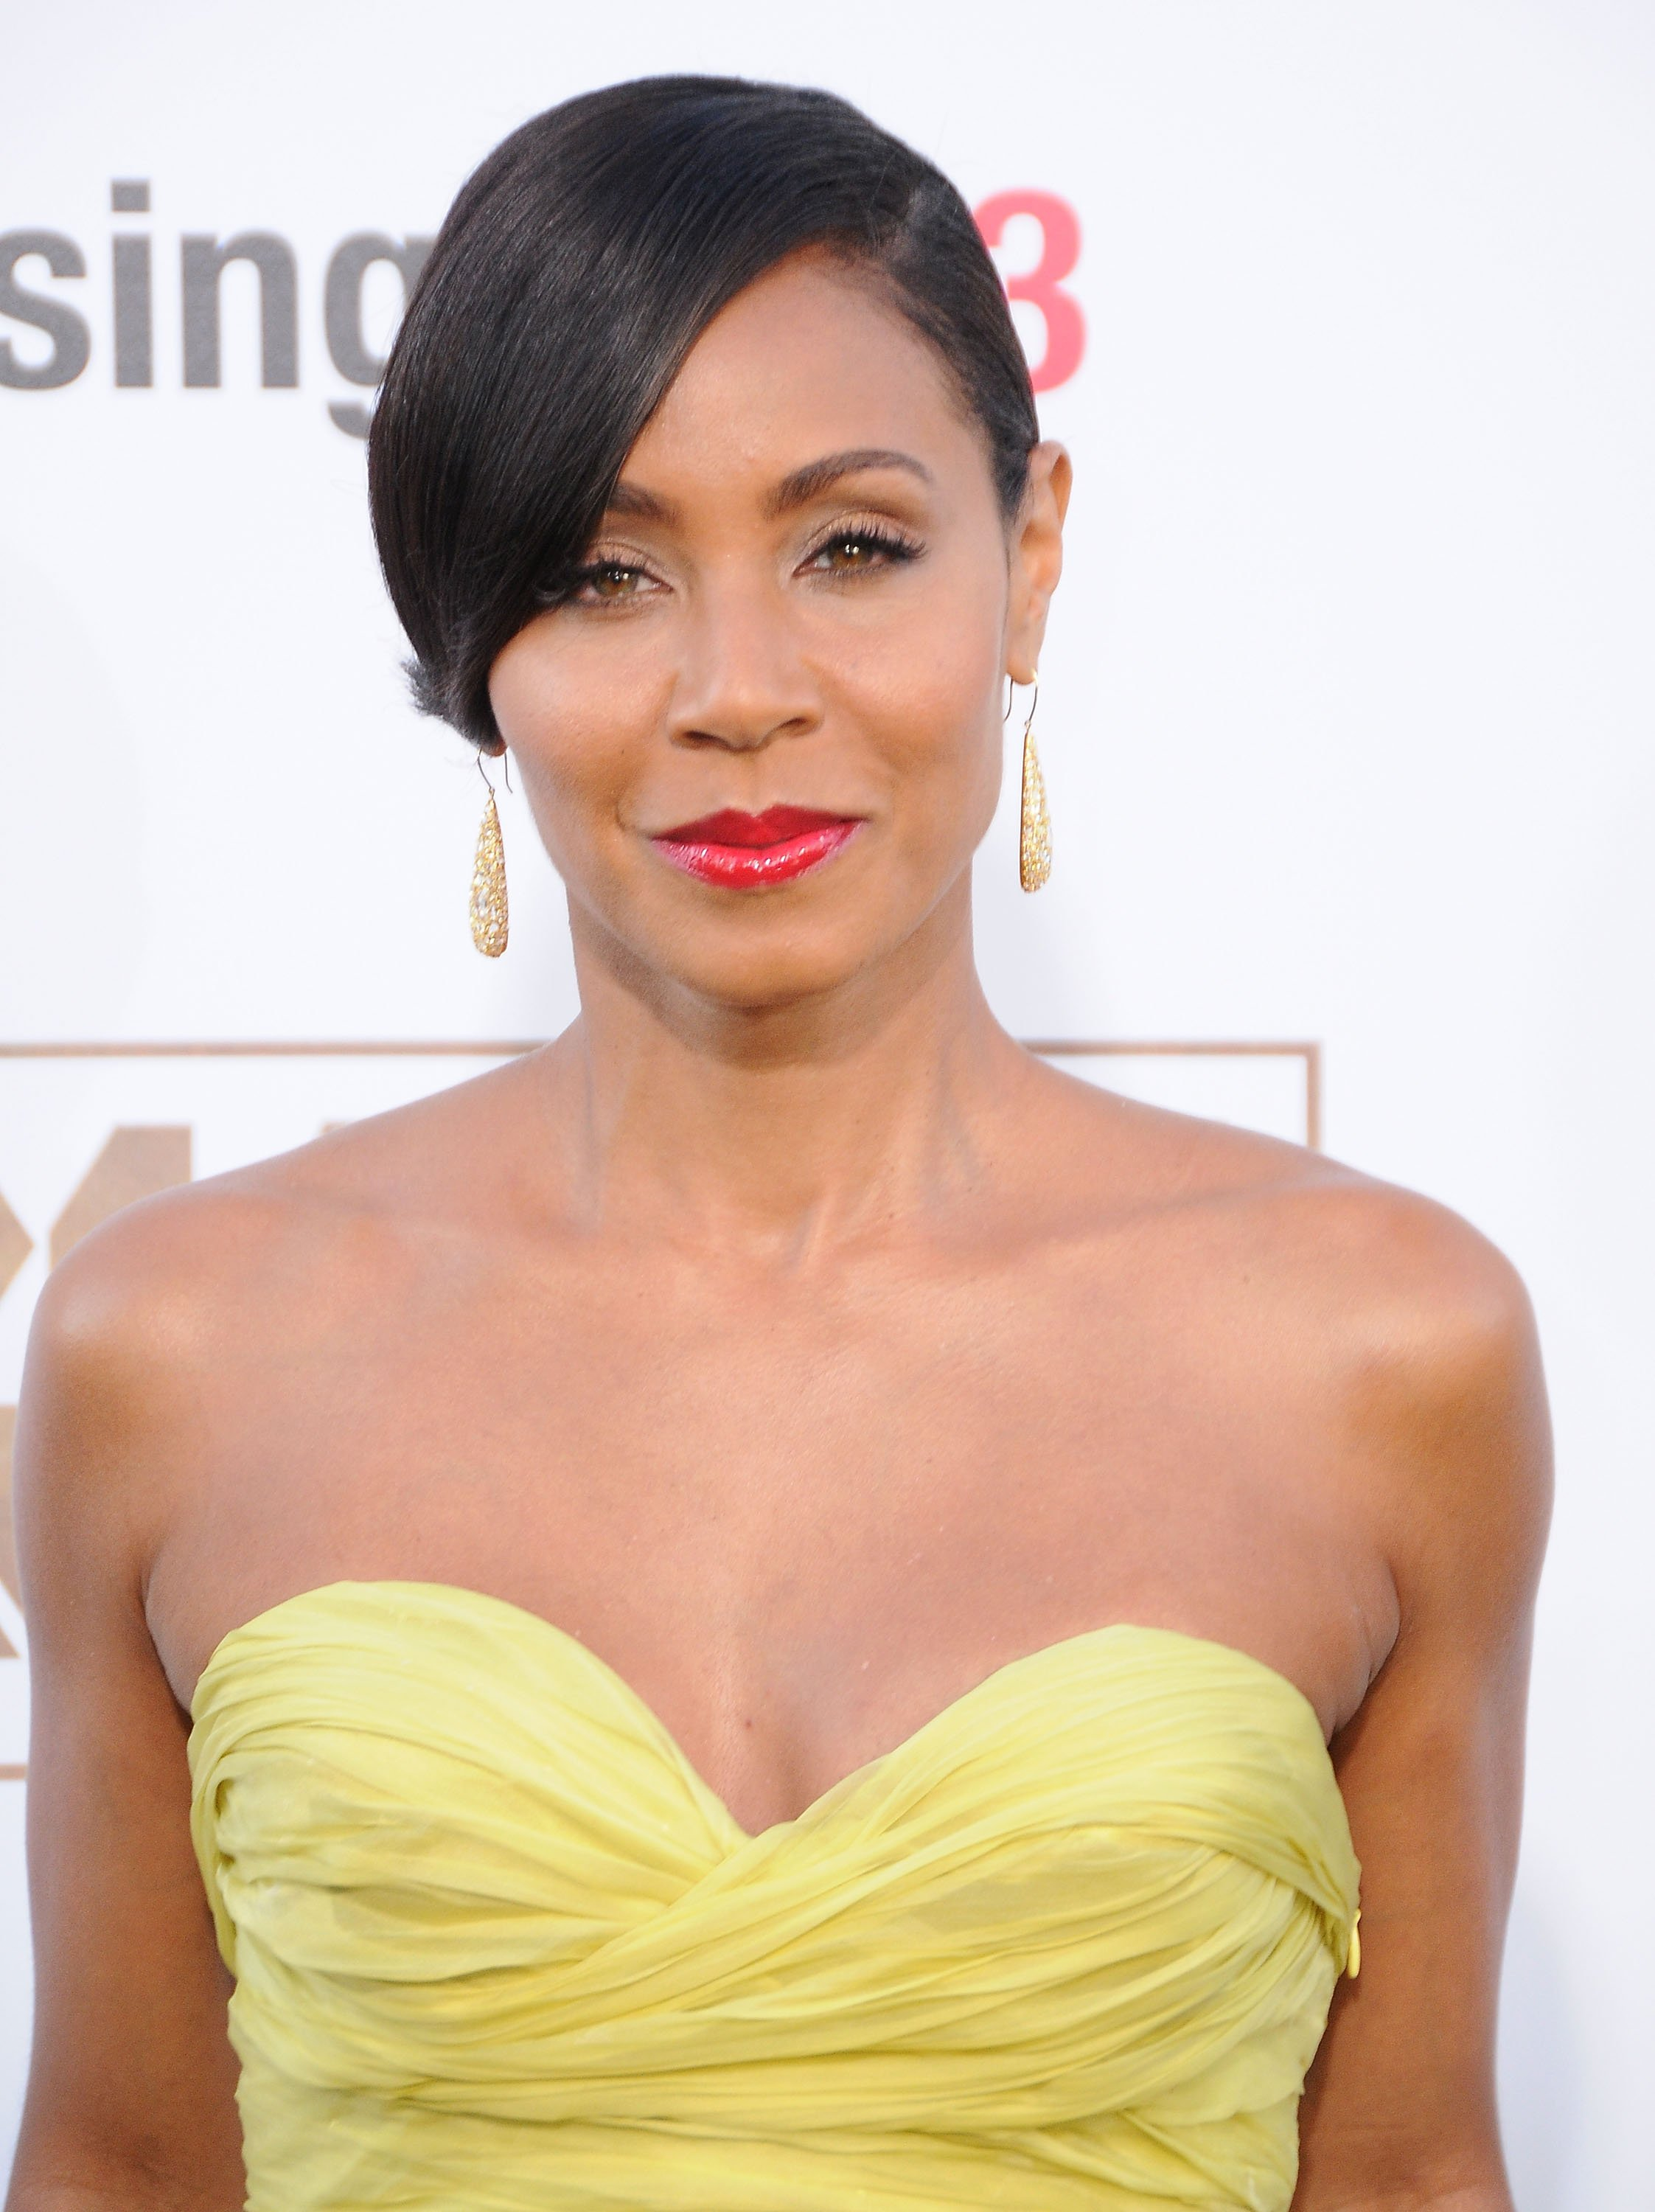 Actress Jada Pinkett Smith arrives at the Los Angeles World Premiere of Warner Bros. Pictures 'Magic Mike XXL' at TCL Chinese Theatre on June 25, 2015 in Hollywood, California | Photo: Gettymages